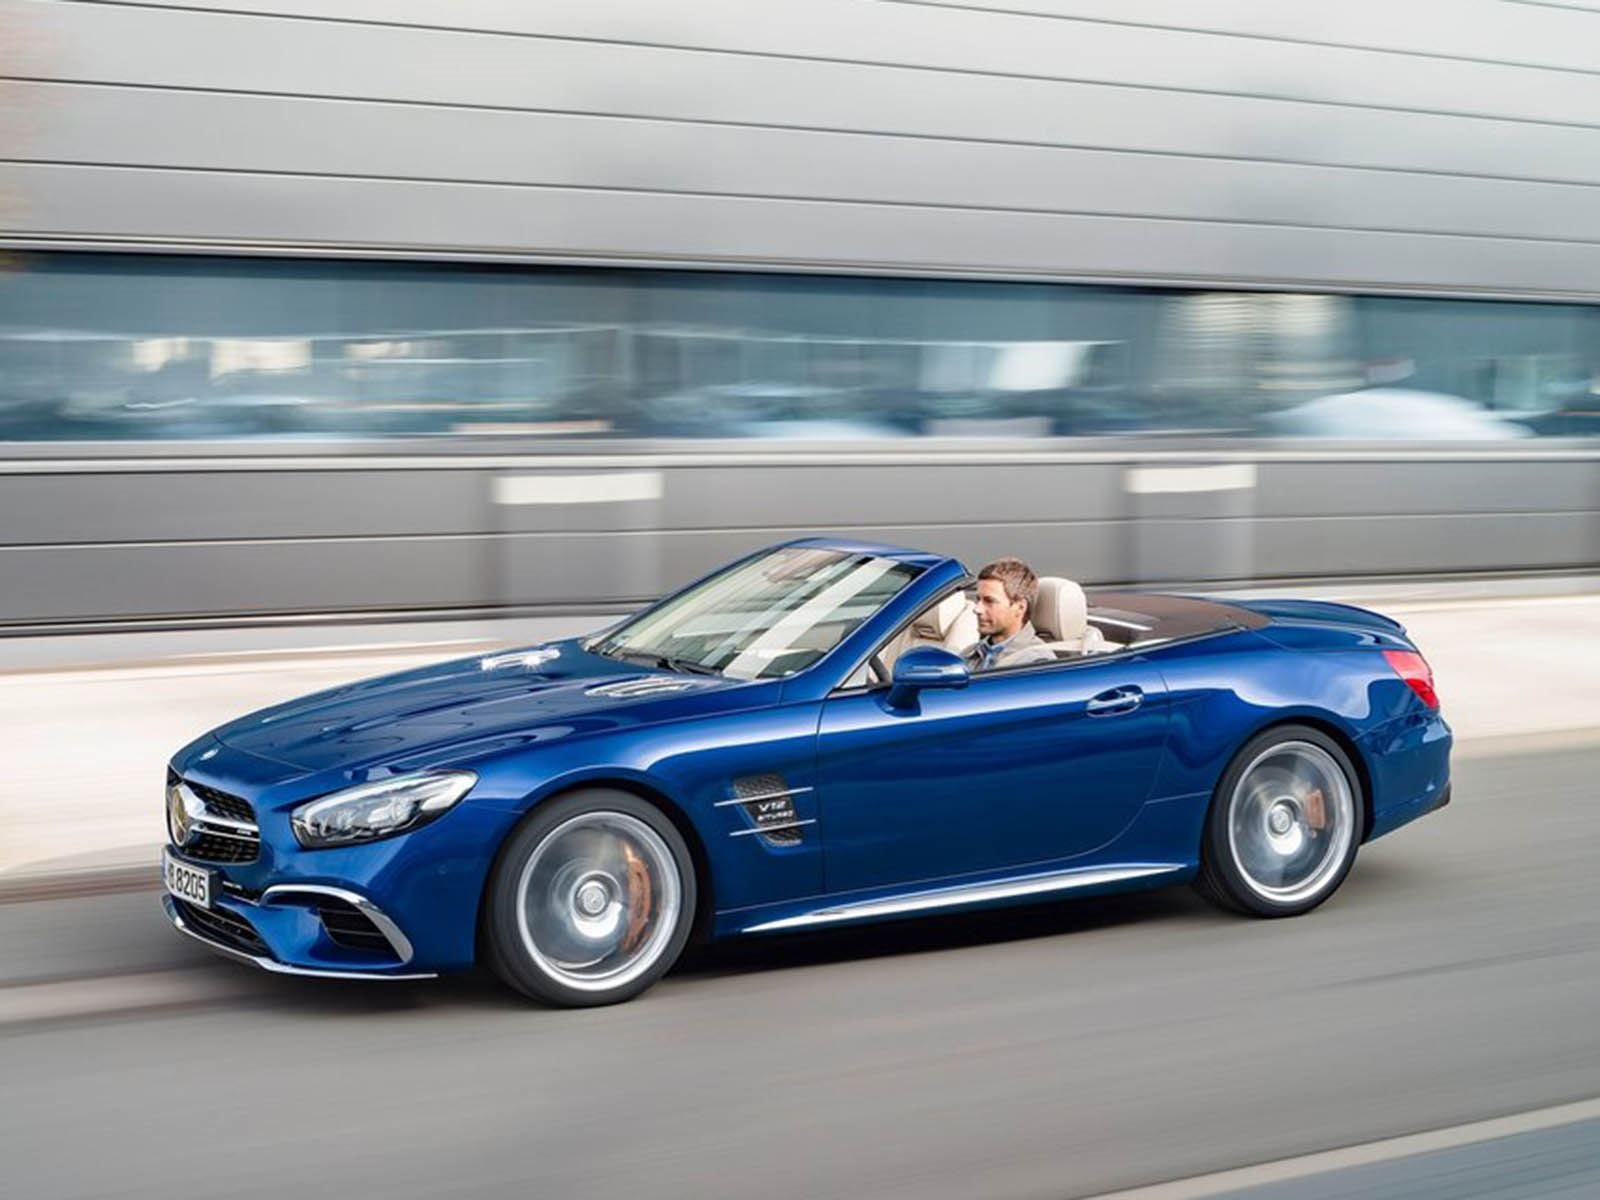 The Next Generation Mercedes SL Will Be A Very Different Car | CarBuzz